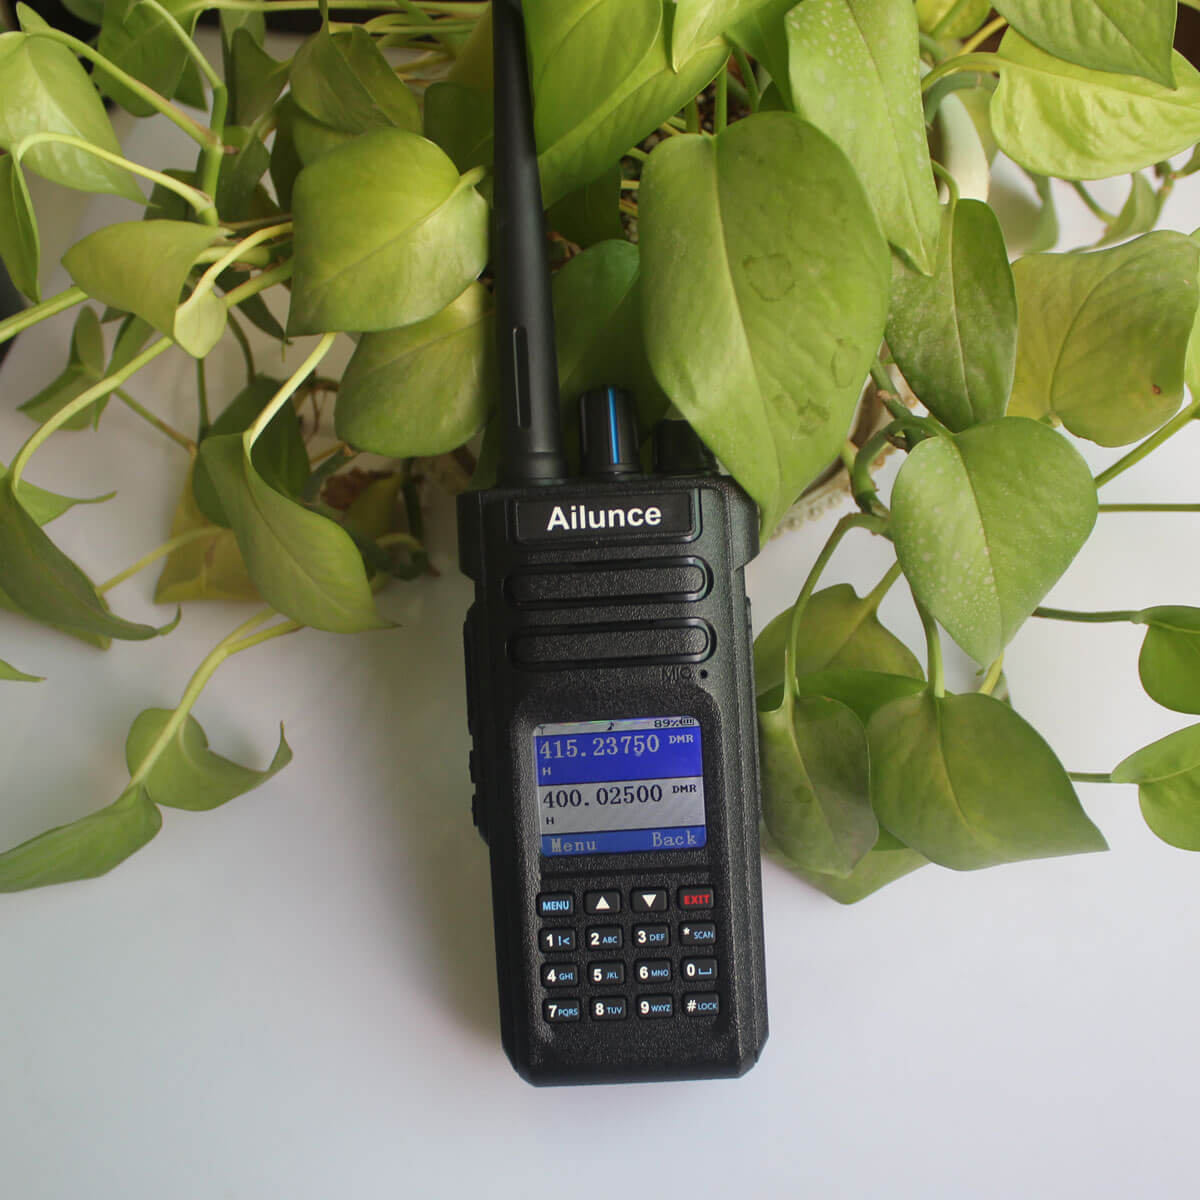 Ailunce HD1 Dual Band Digital Radio is coming soon